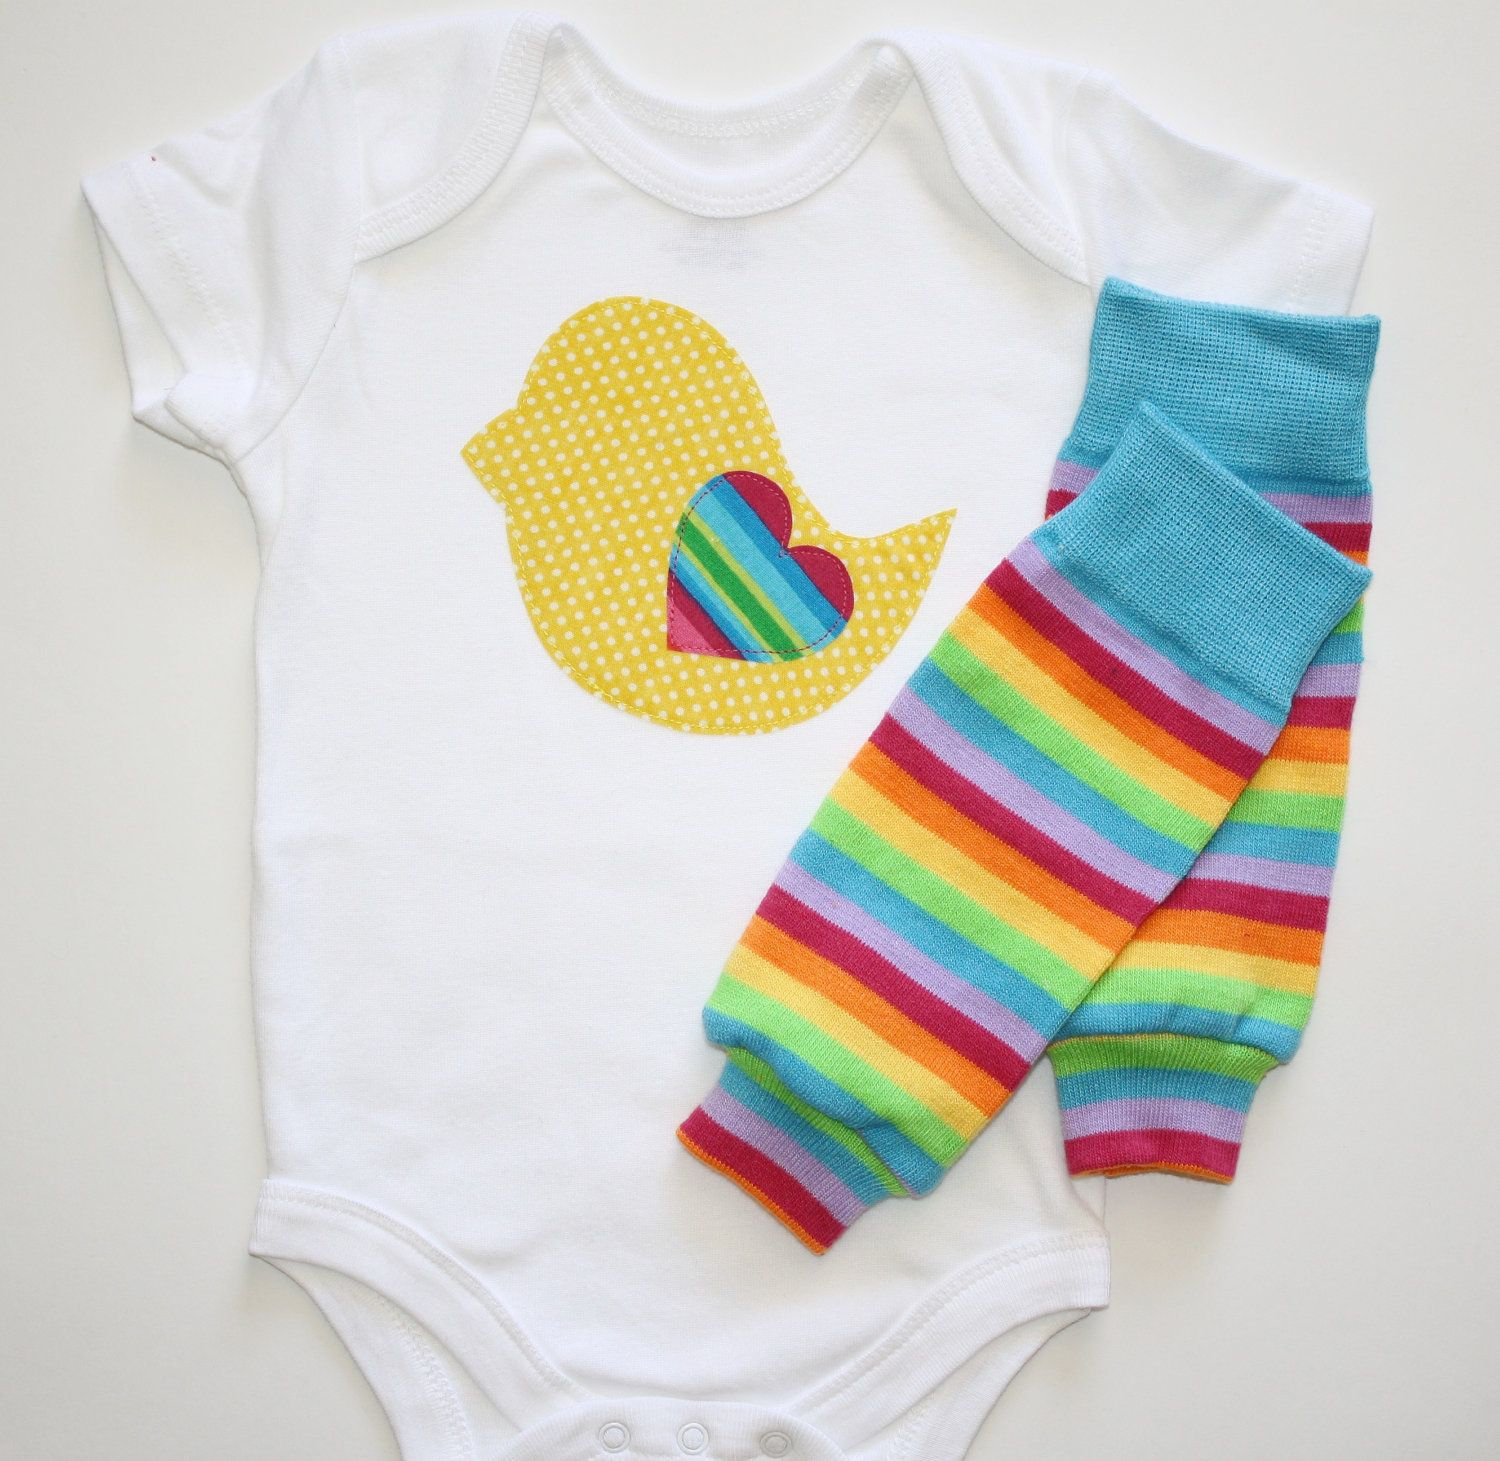 6f976d825033 Yellow and White Polka Dot Baby Chick Rainbow Heart Applique